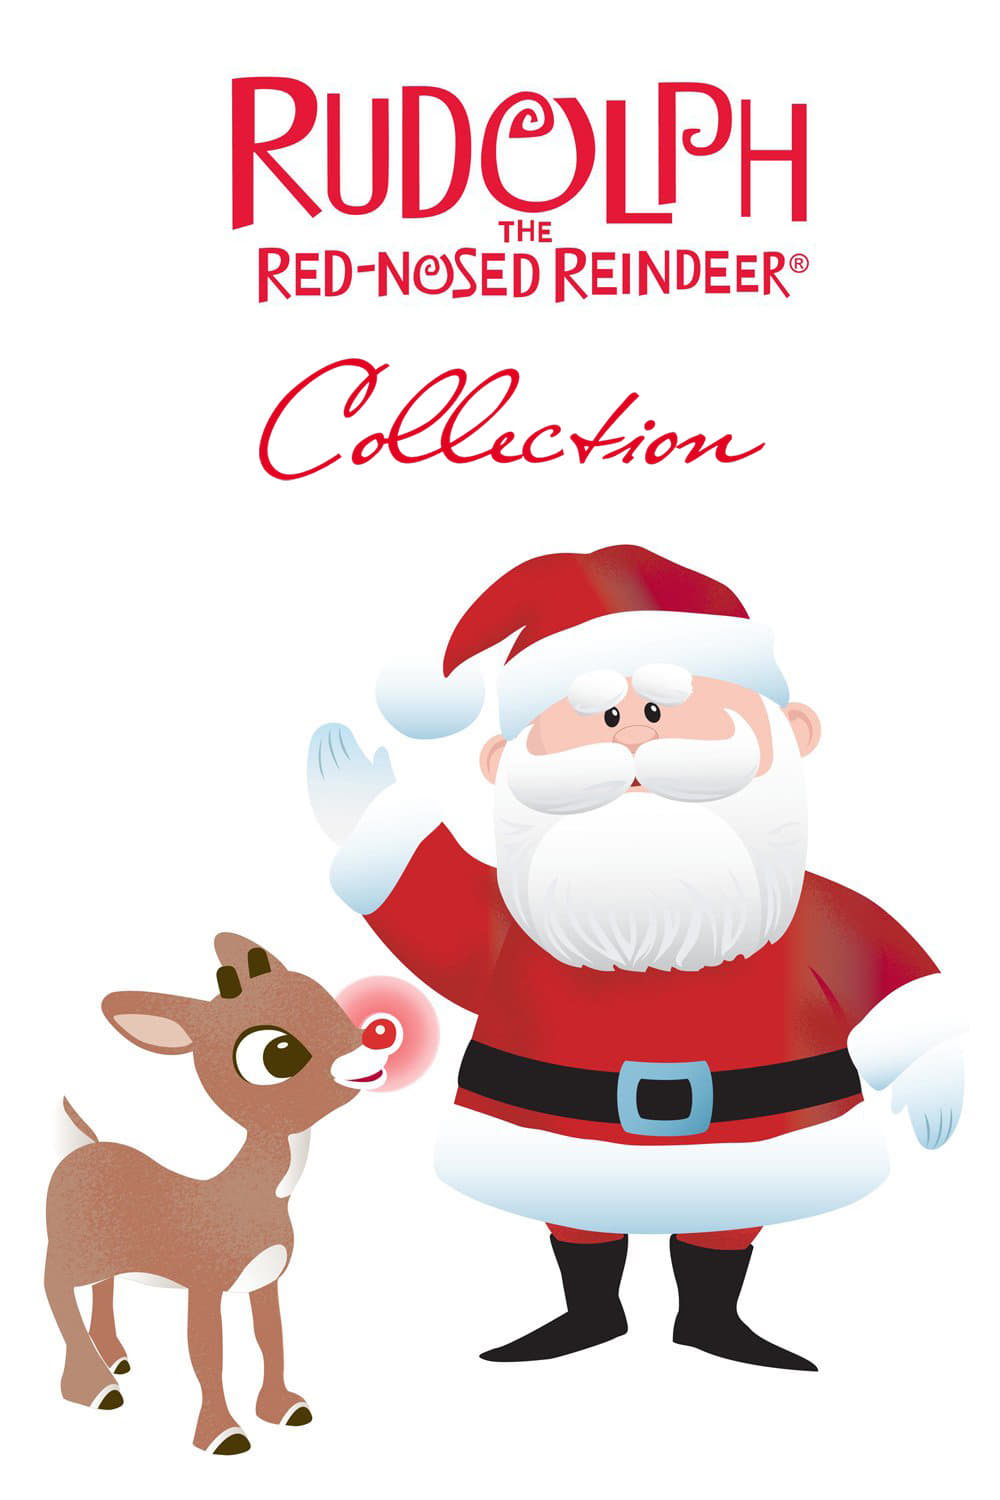 Rudolph the Red-Nosed Reindeer Collection - Posters — The ...